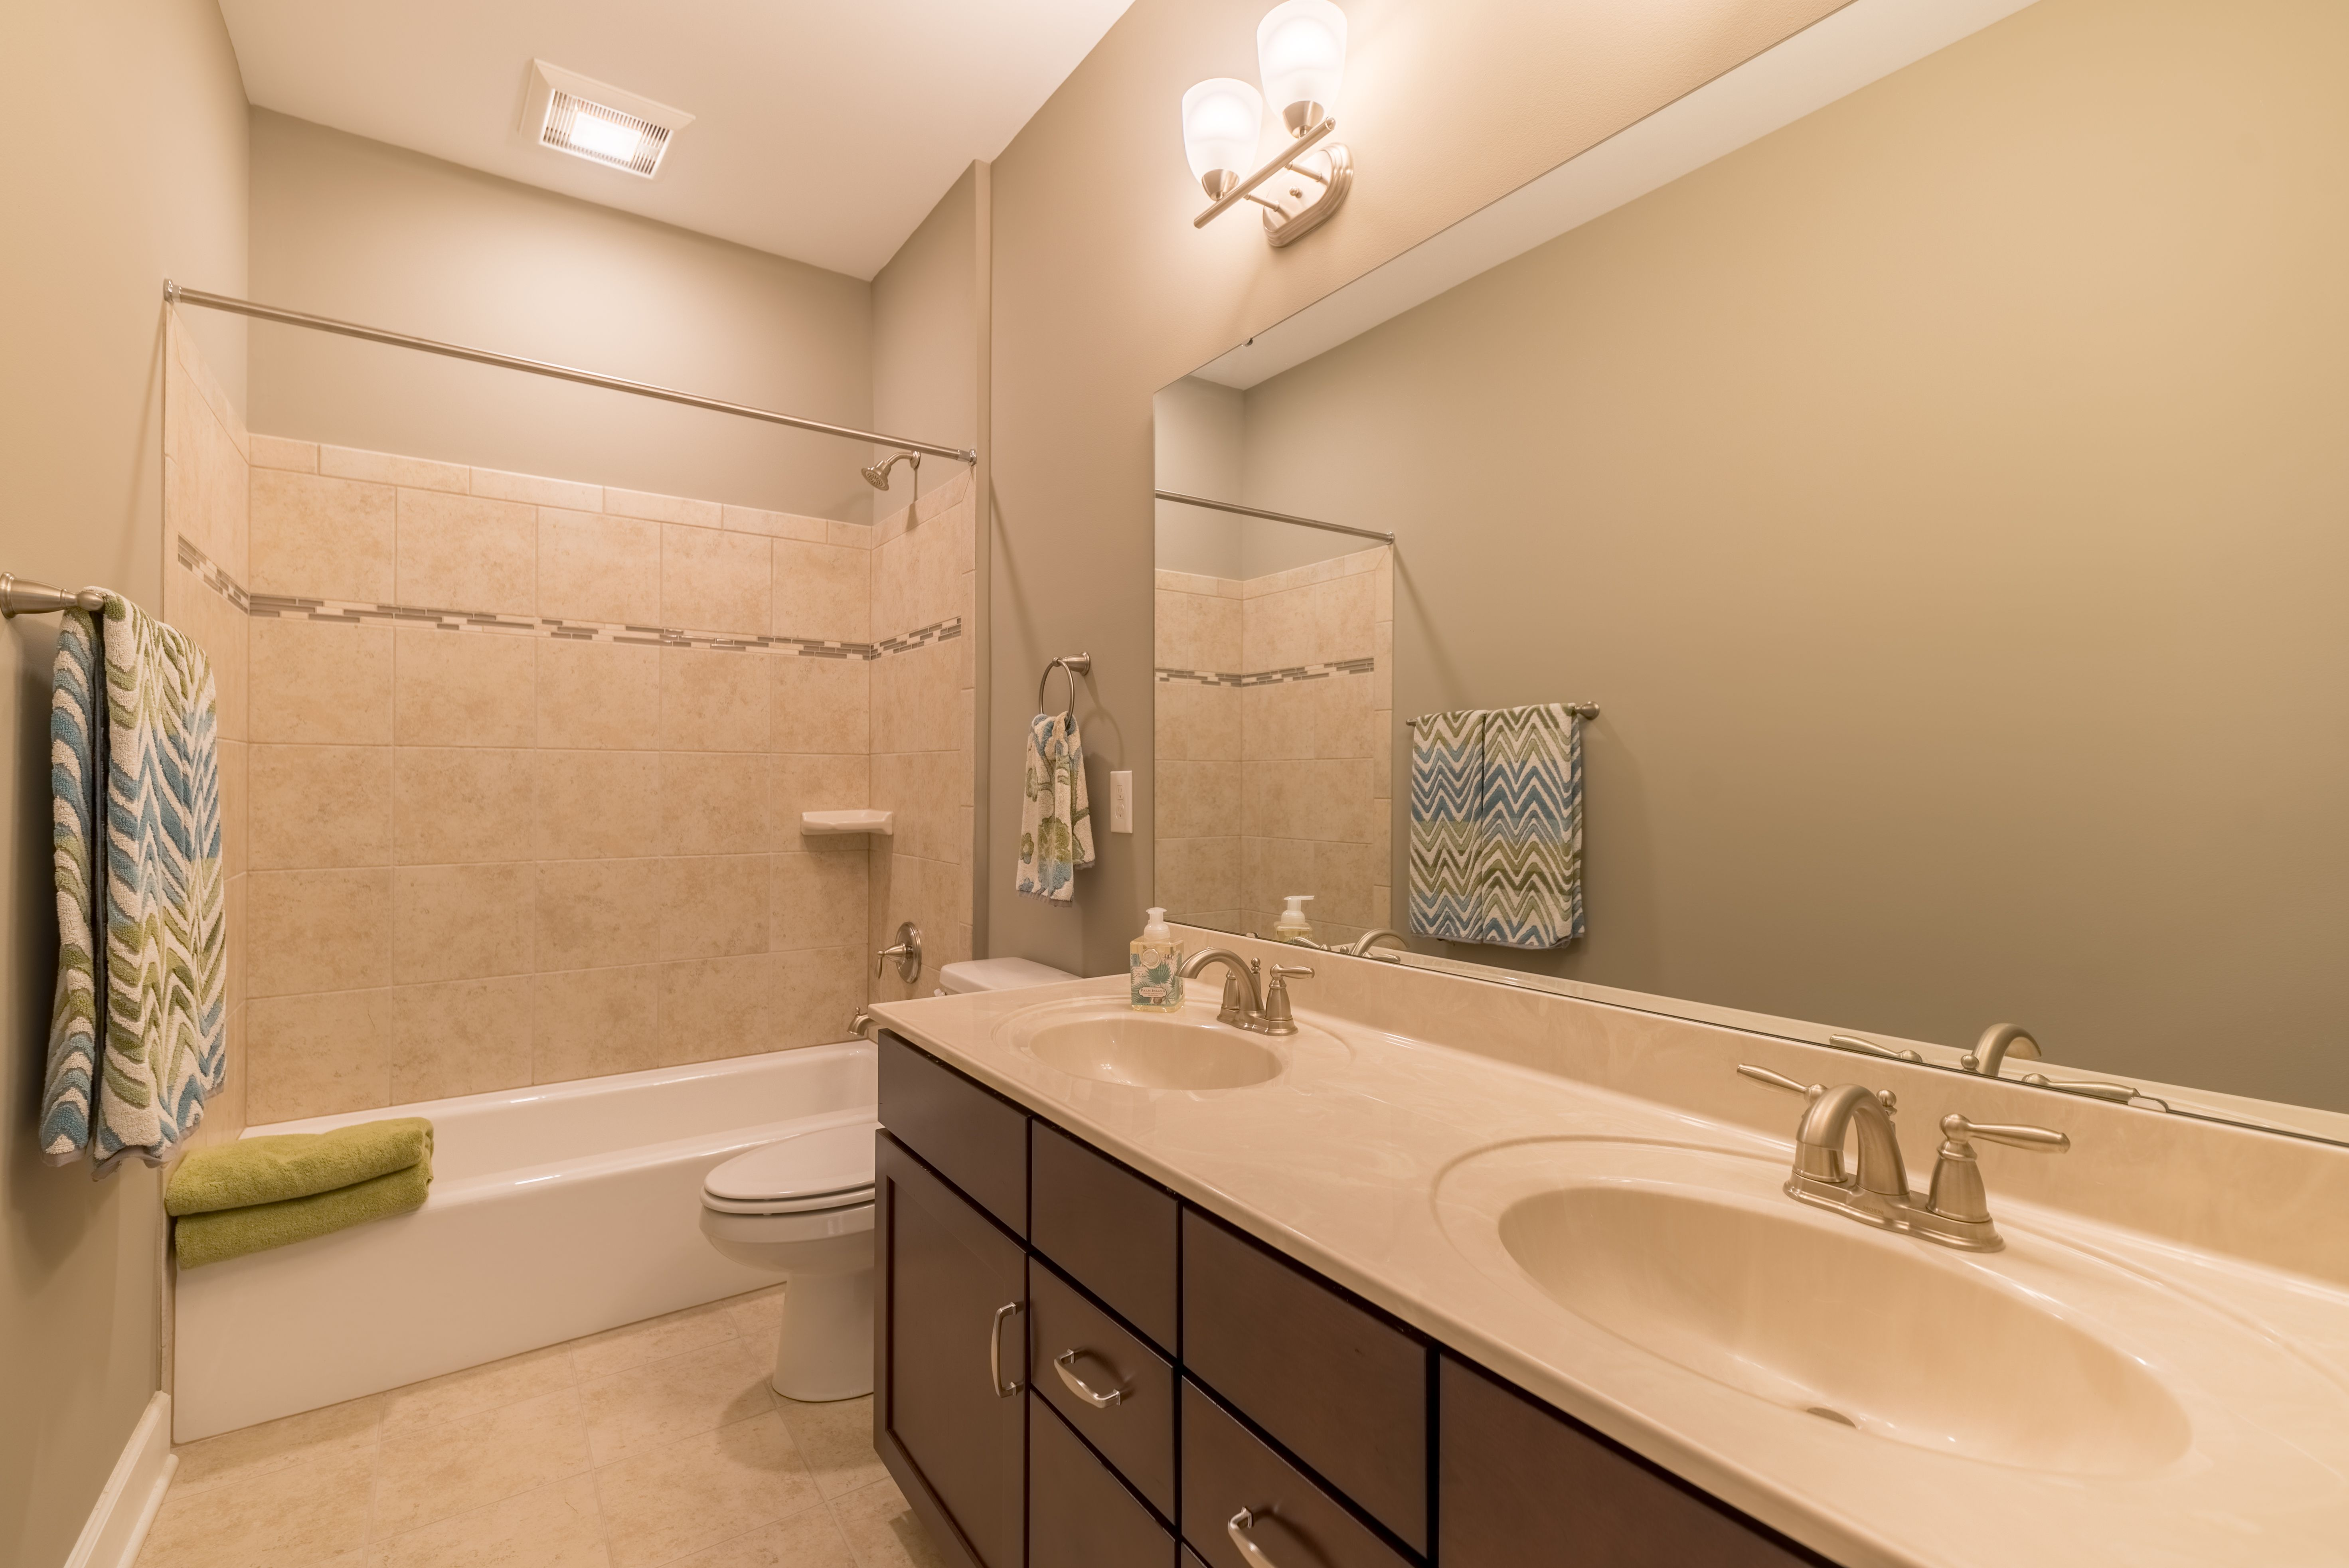 Bathroom featured in The Ashland By Stateson Homes in Roanoke, VA